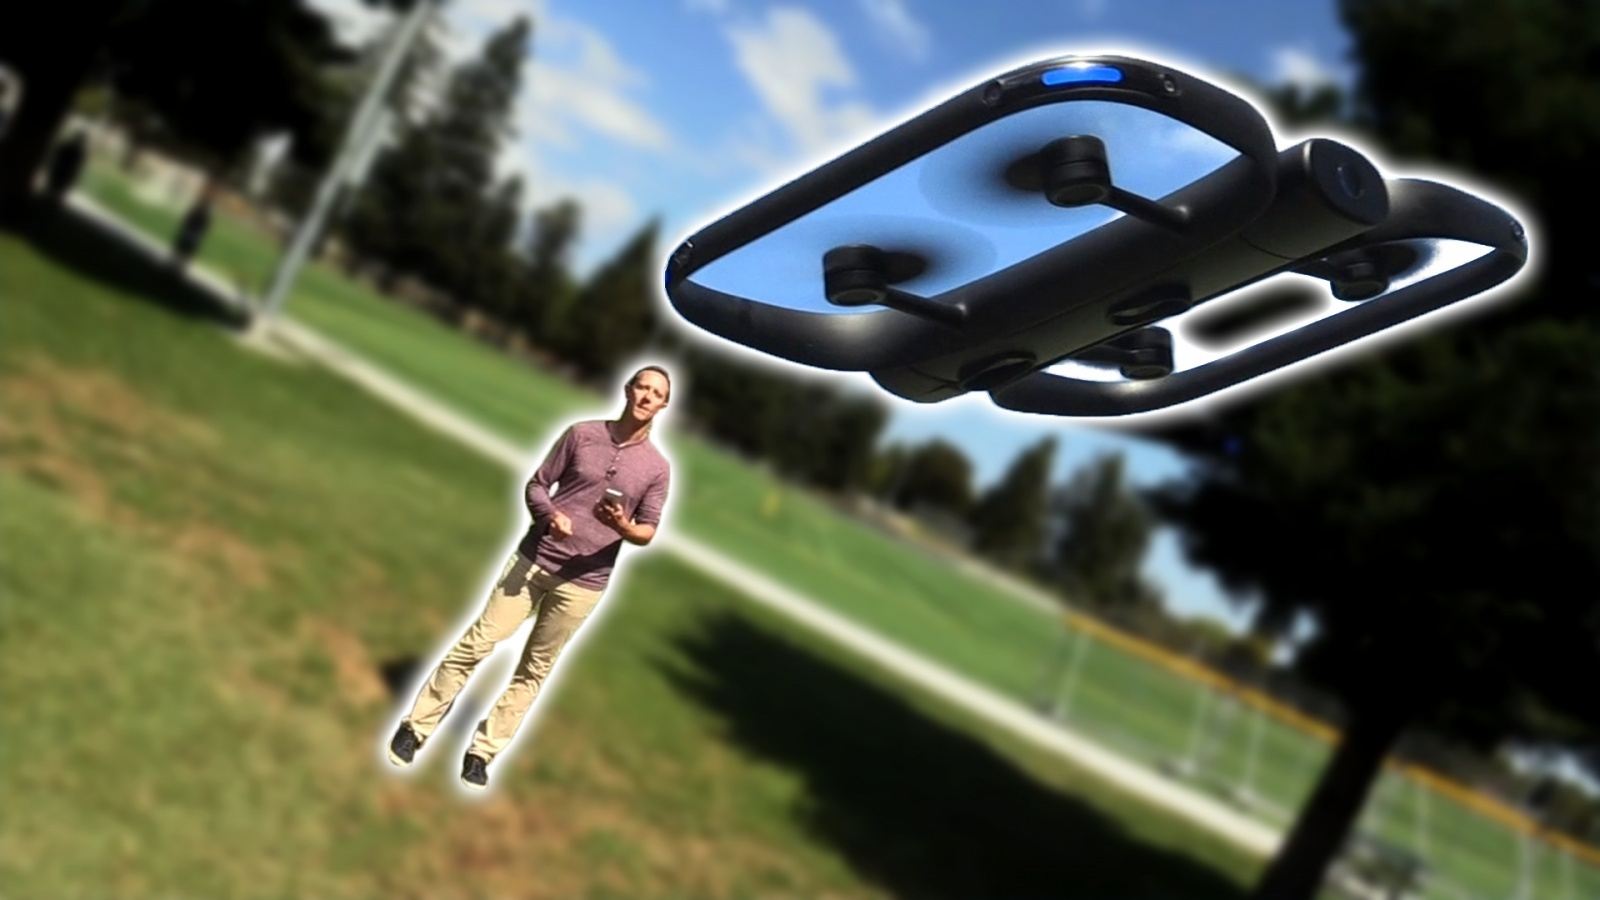 TNSS 173: Skydio's AI-Powered Self-Flying 4K Drone - Skydio R1, geeky cooking, data recovery on macOS, and more.